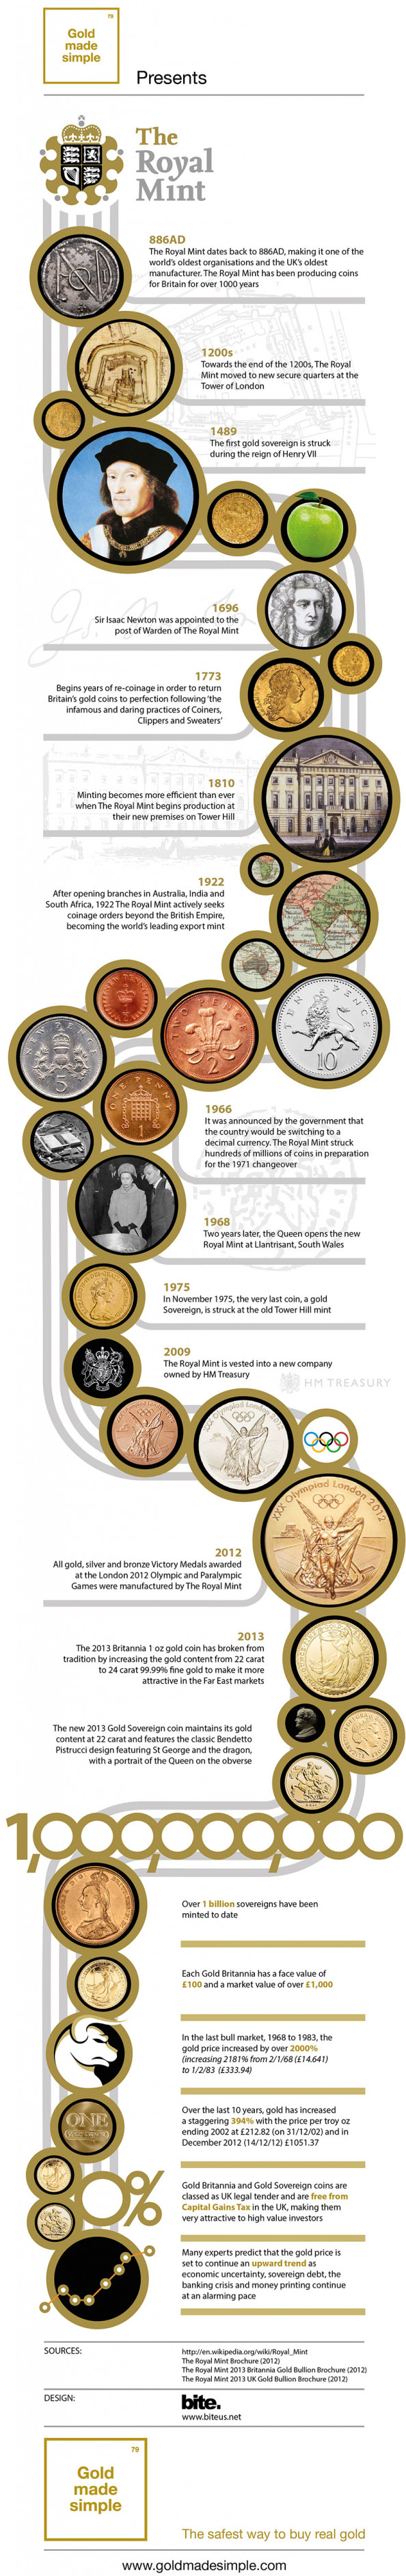 Tax Free Gold and The Royal Mint: A History Infographic